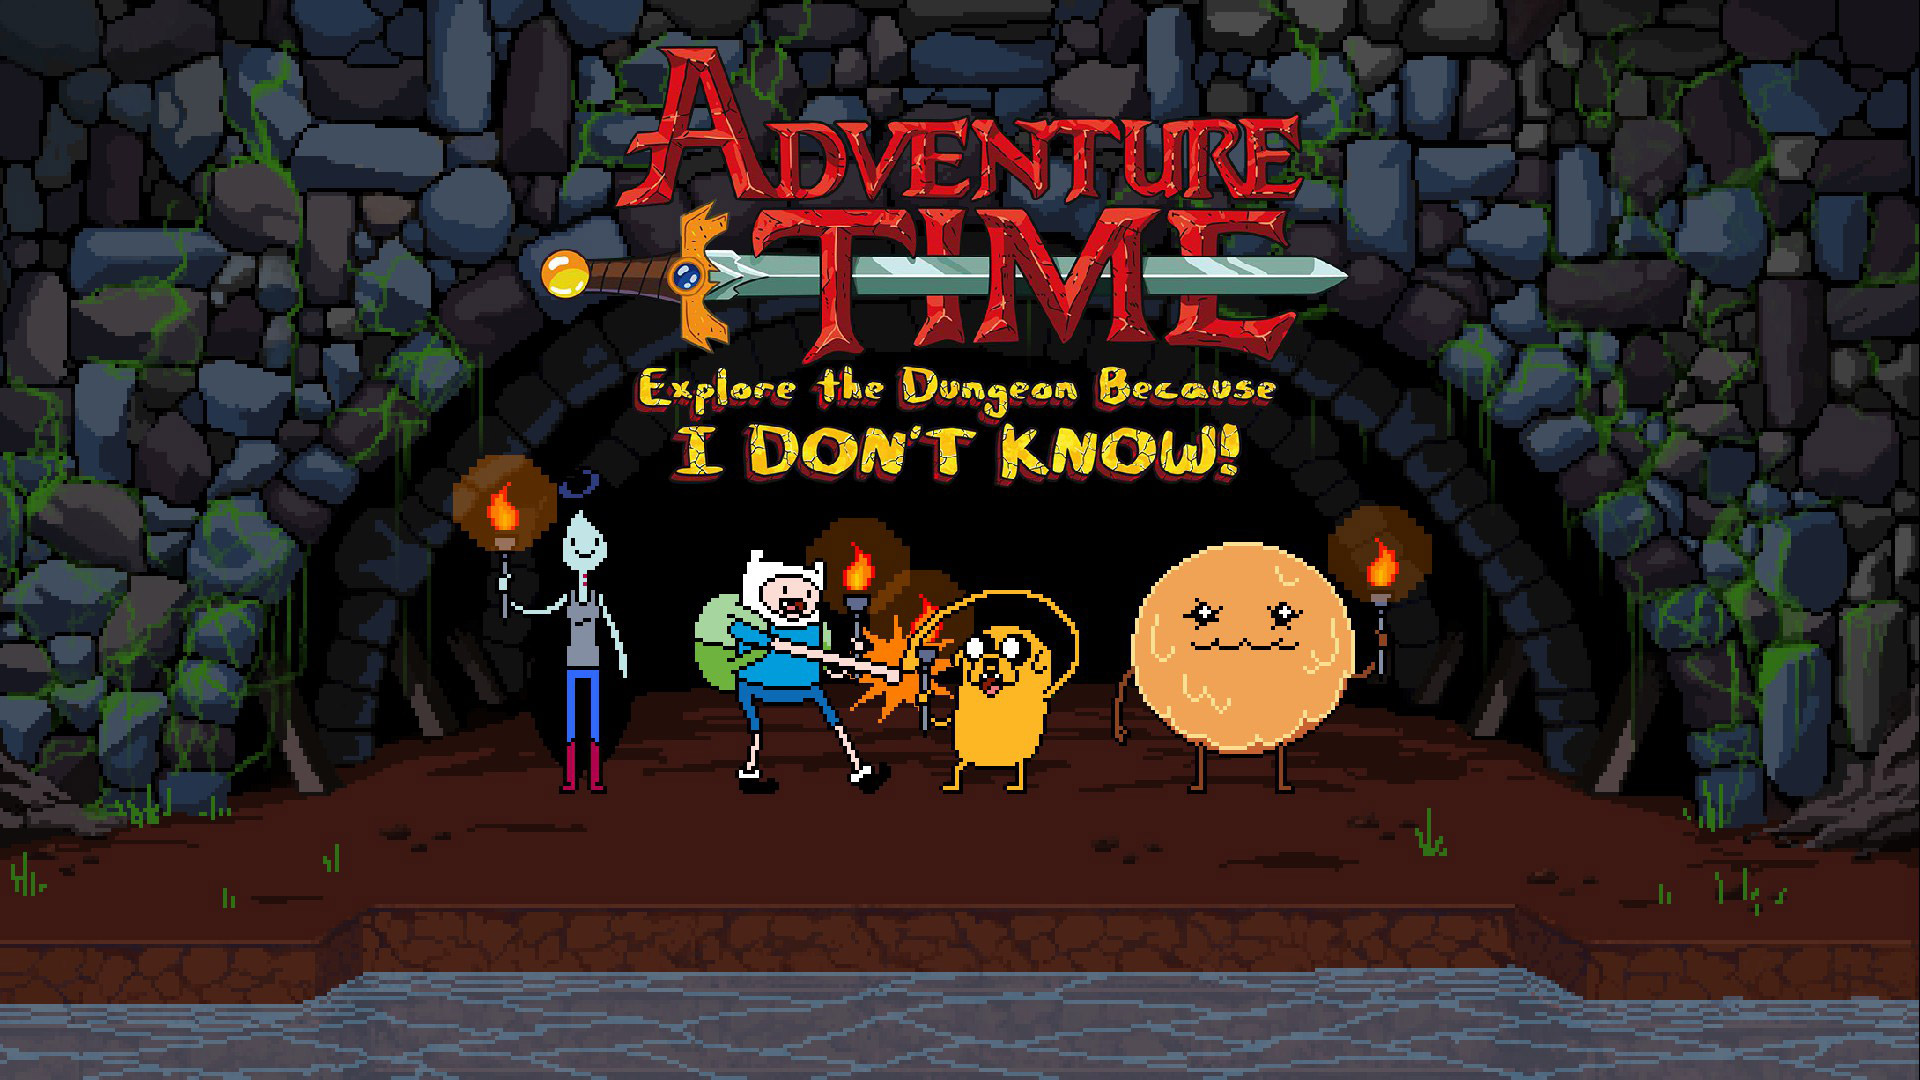 Adventure Time: Explore the Dungeon Because I DON'T KNOW! Wallpaper in 1920x1080